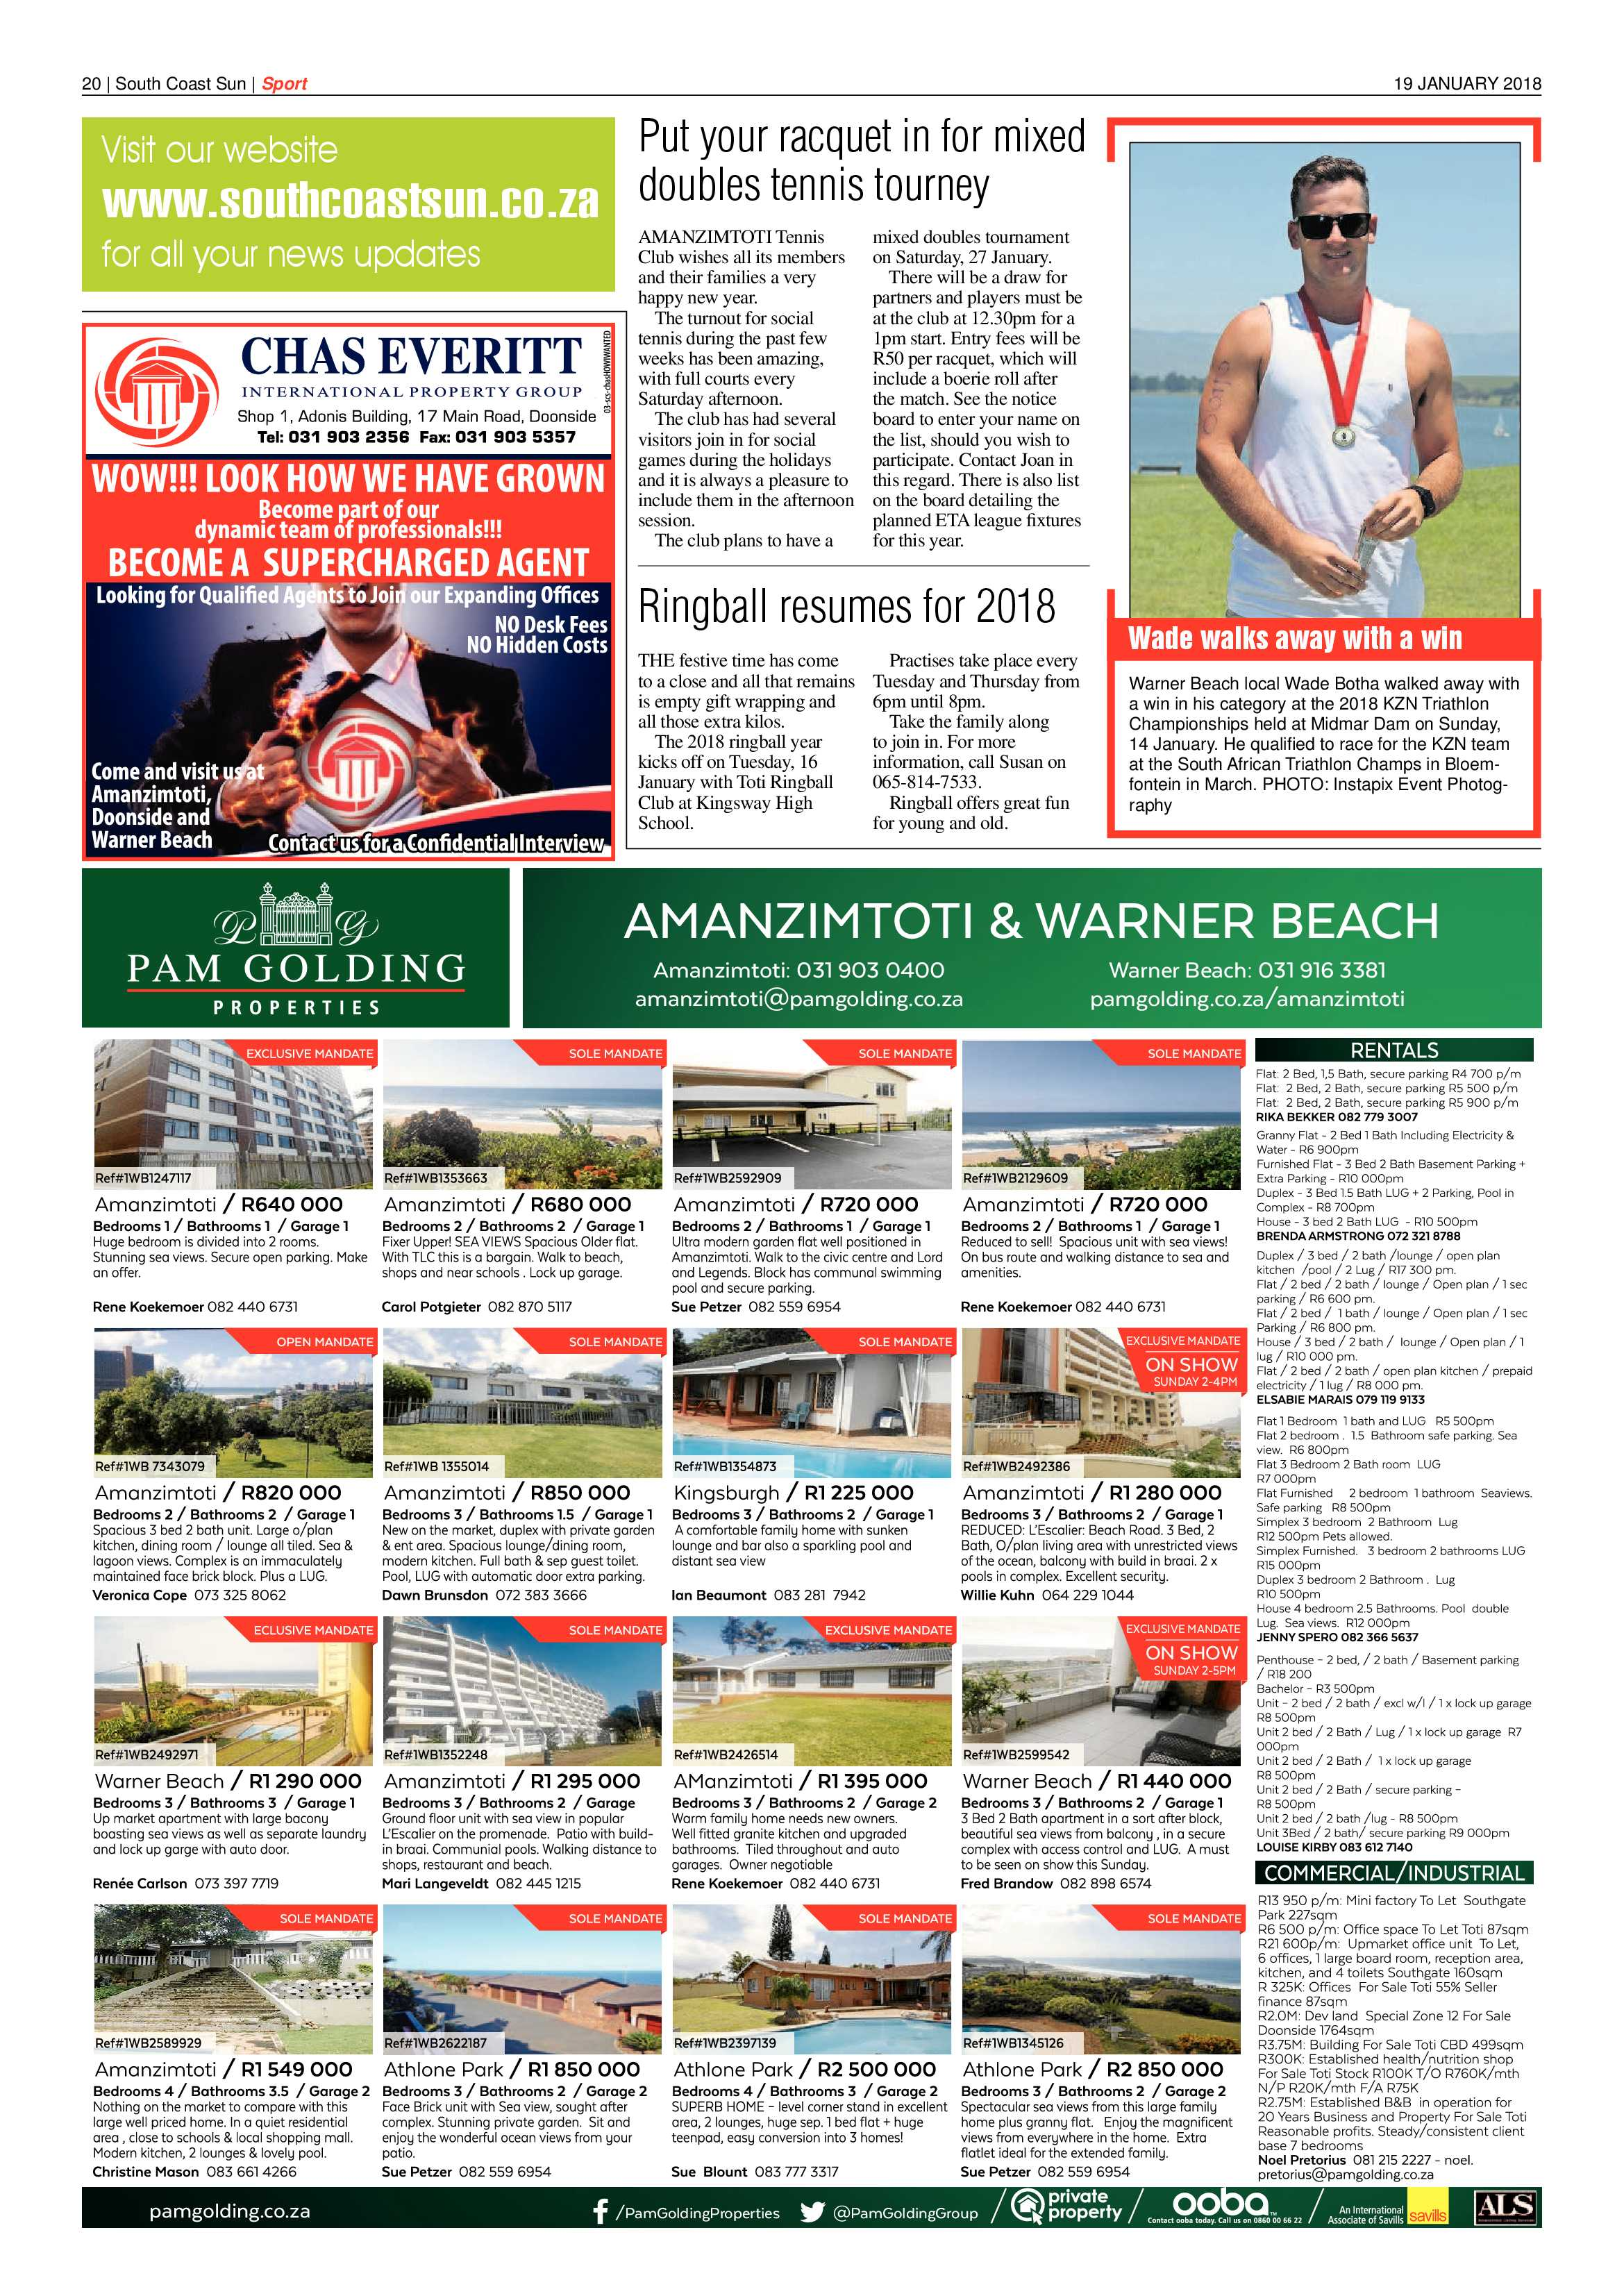 19-january-2018-epapers-page-20